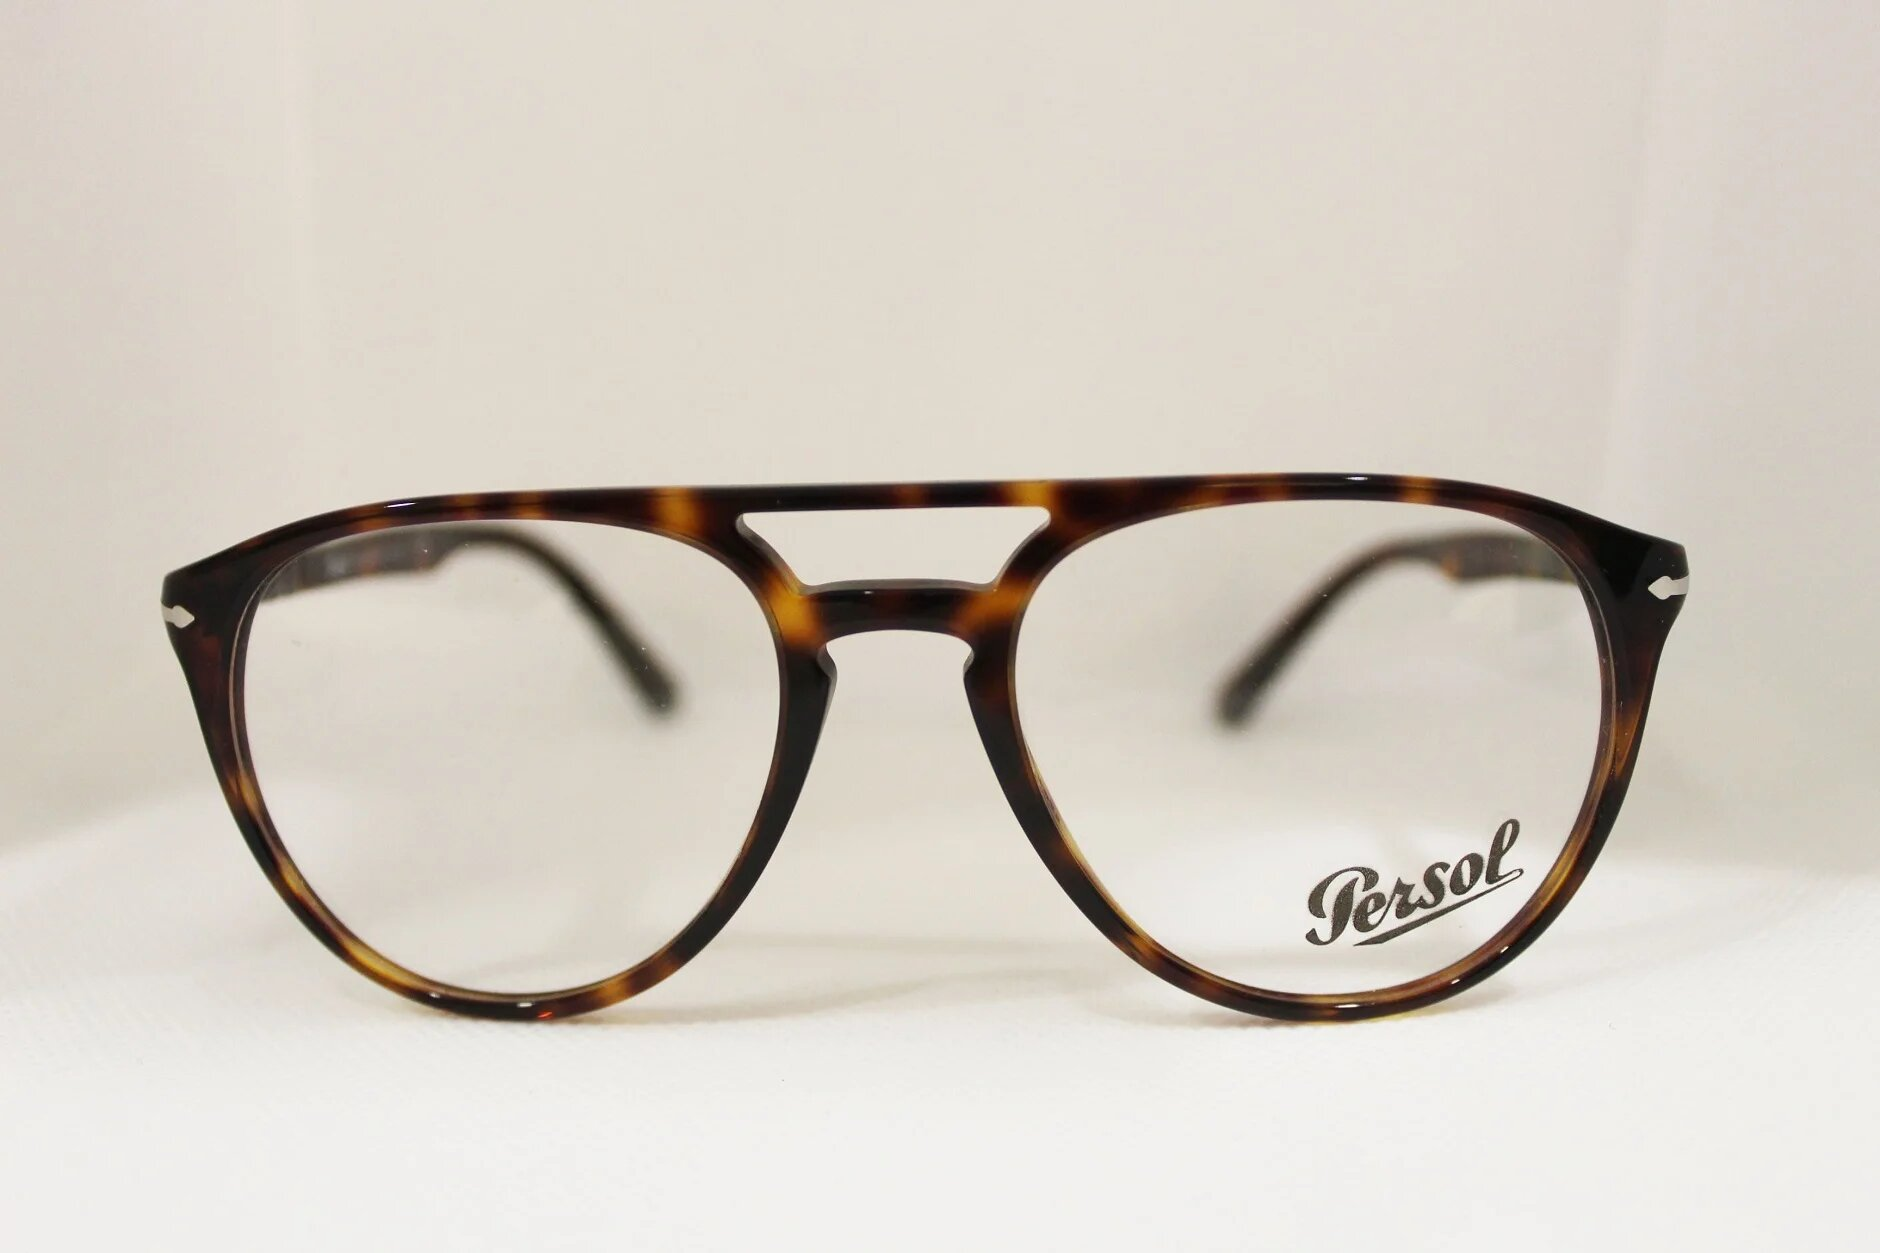 Ulleres Persol